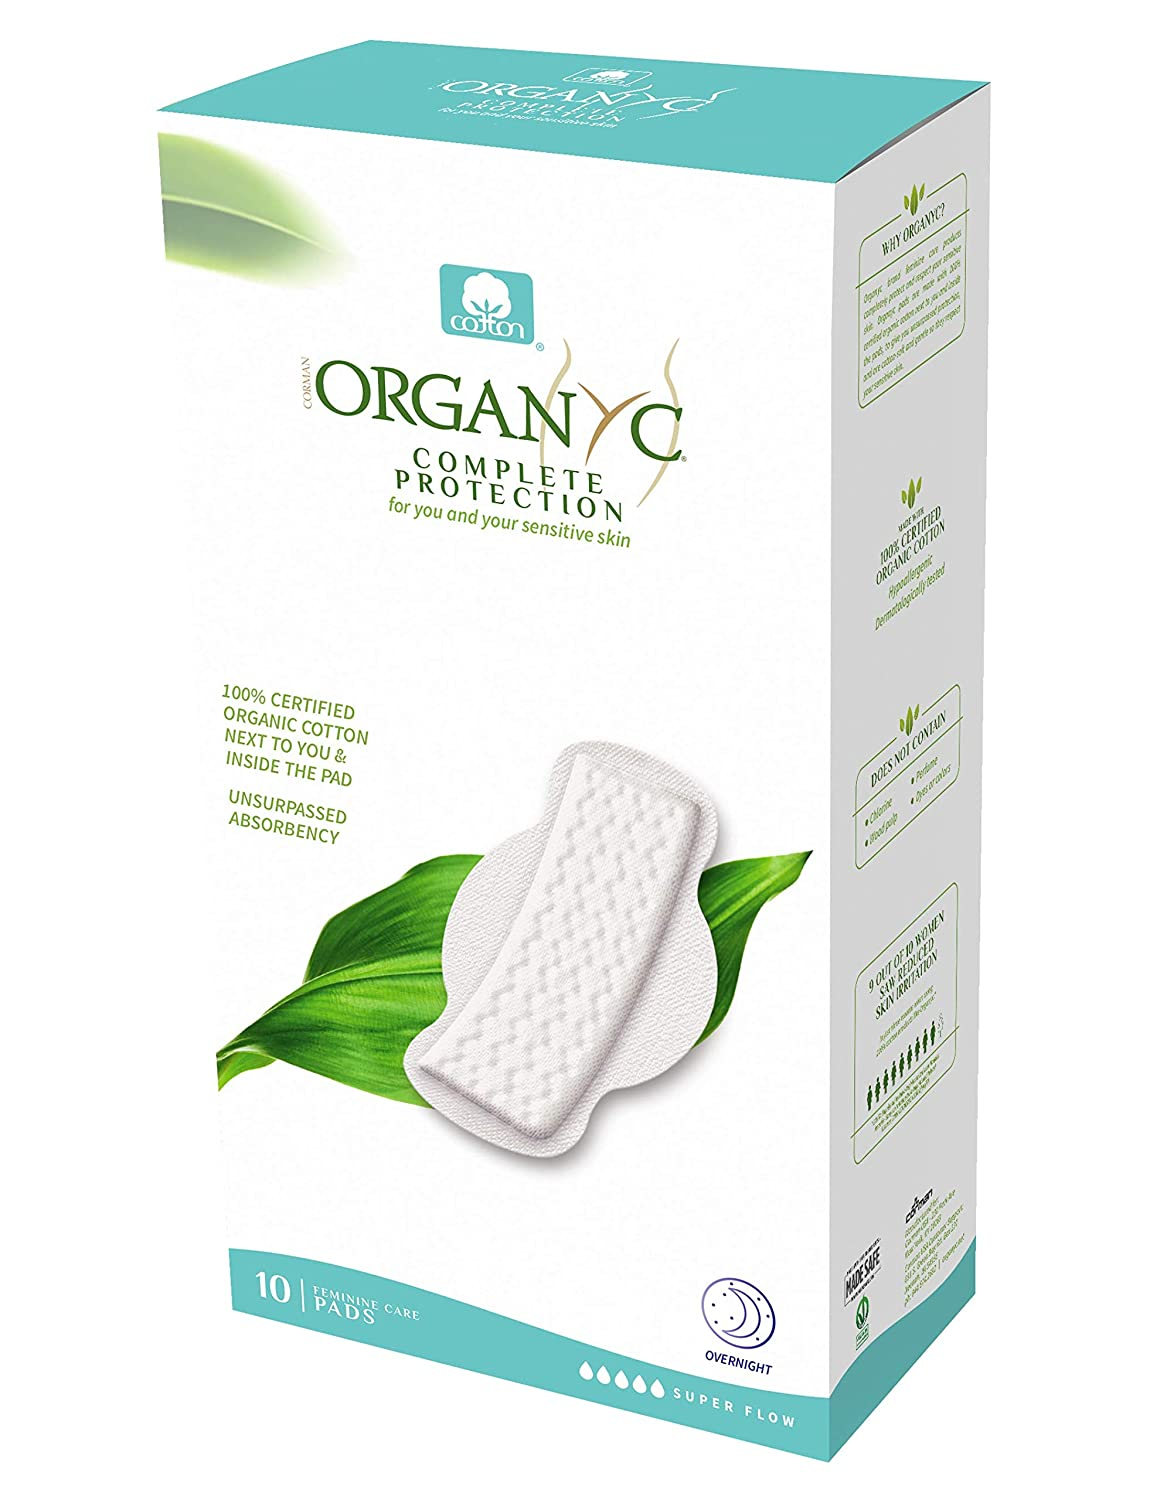 ORGANYC Hypoallergenic 100% Organic Cotton Pads with Wings, Super Flow & Maternity, 10-count Boxes by ORGANYC   B003ART1KK